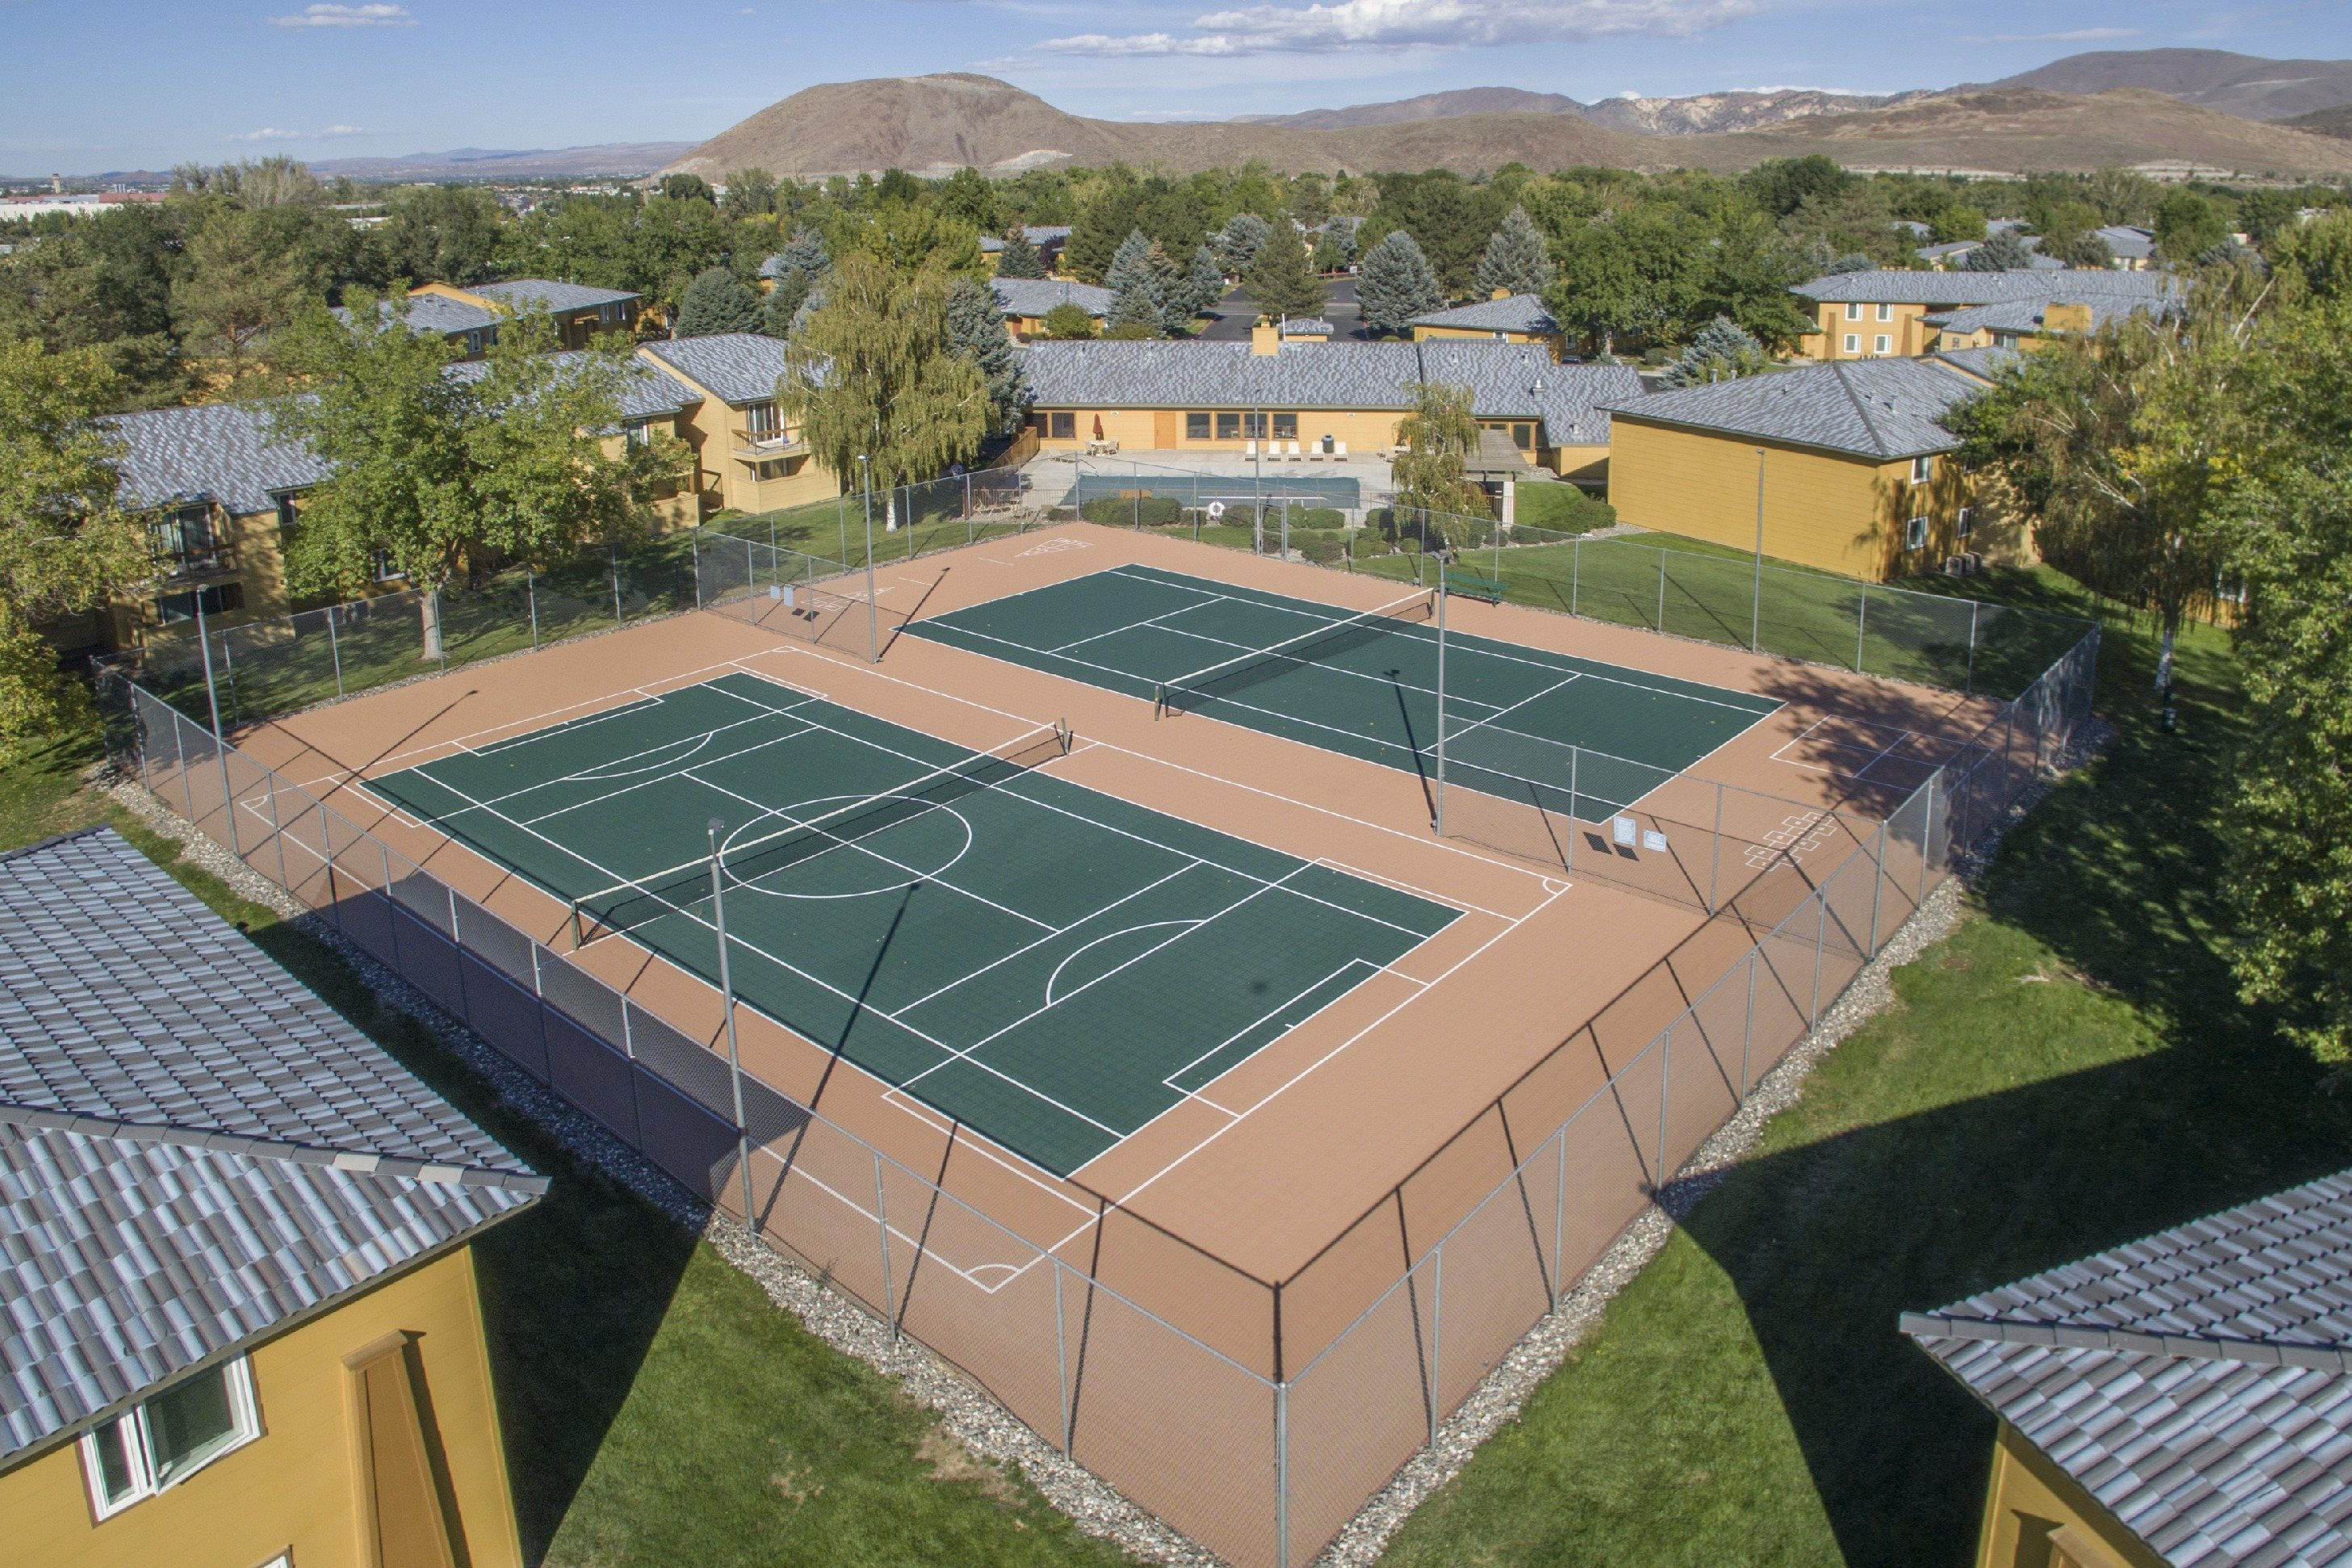 Sports Courts at Village at Iron Blossom